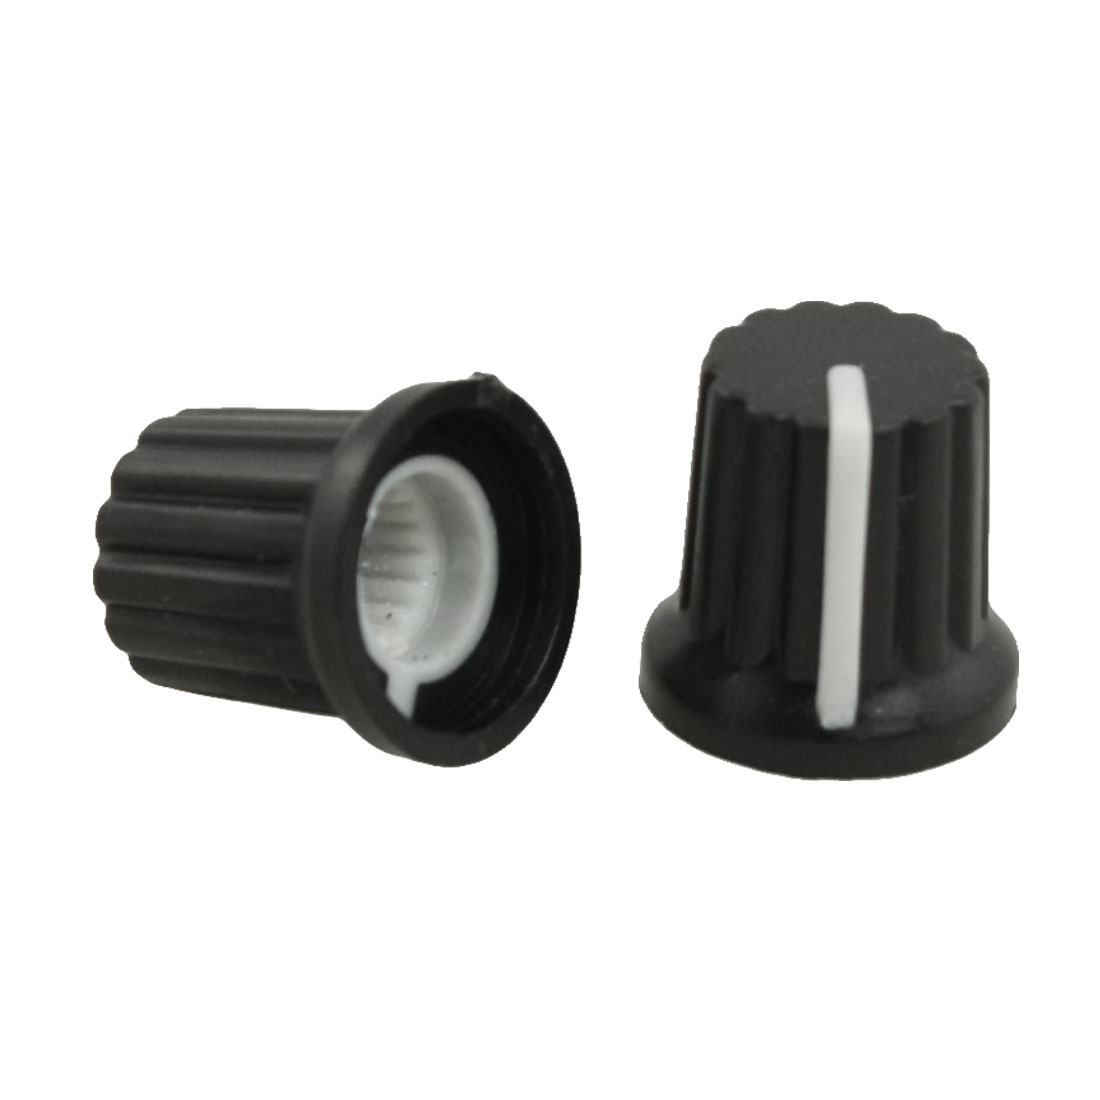 10 Pcs 6mm Shaft Hole Dia White Mark Black Potentiometer Pot Knobs Caps